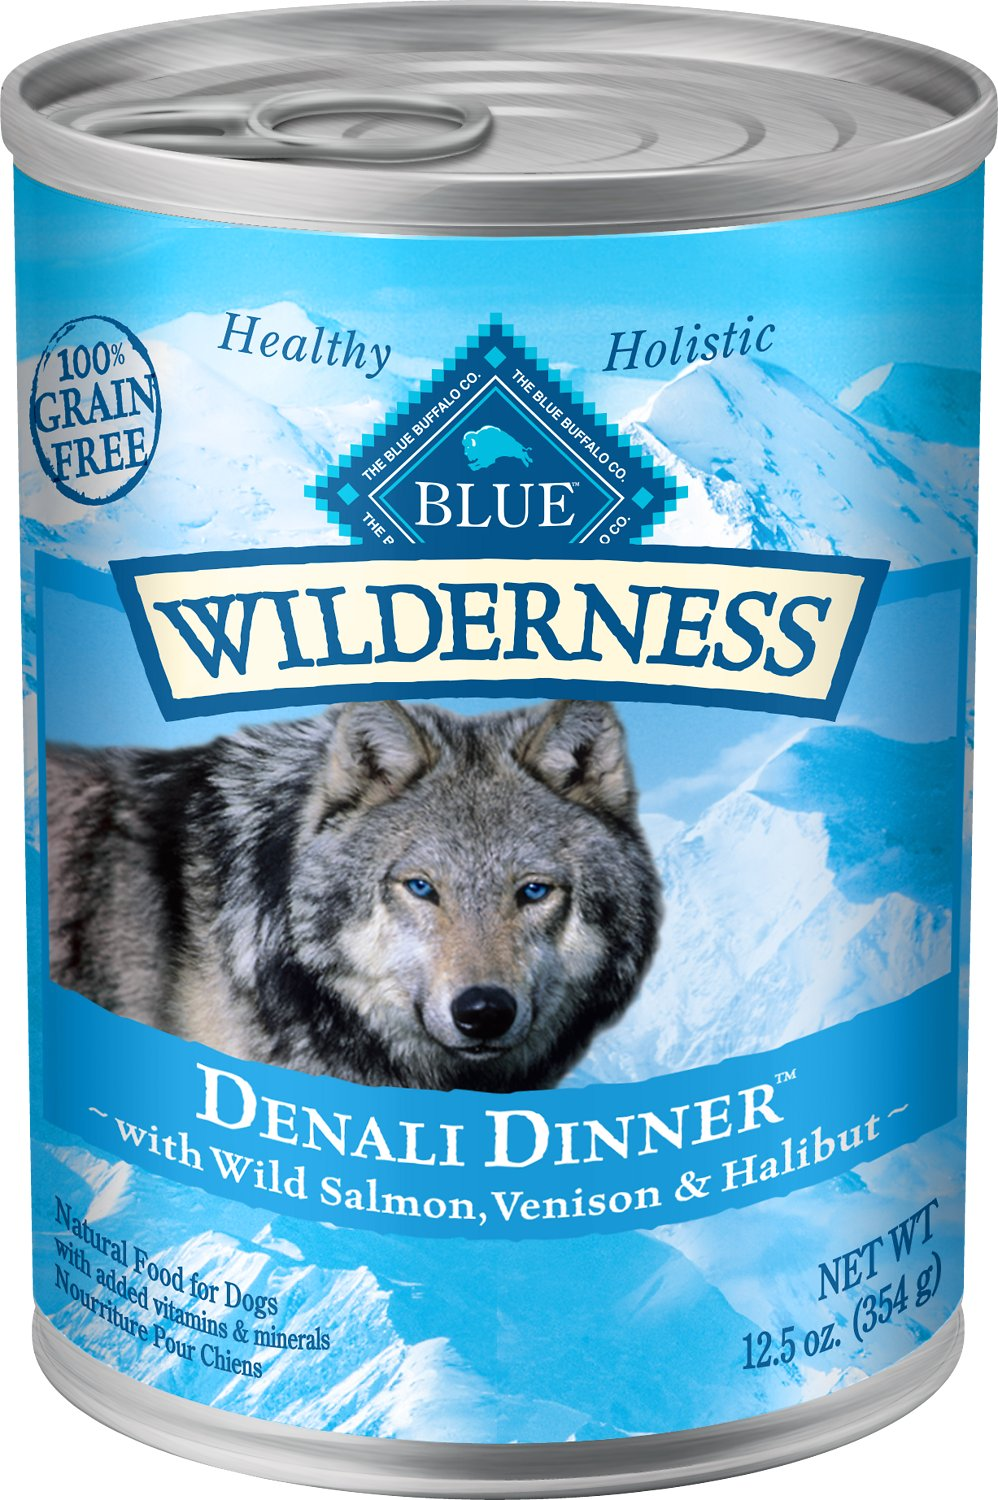 blue canned dog food